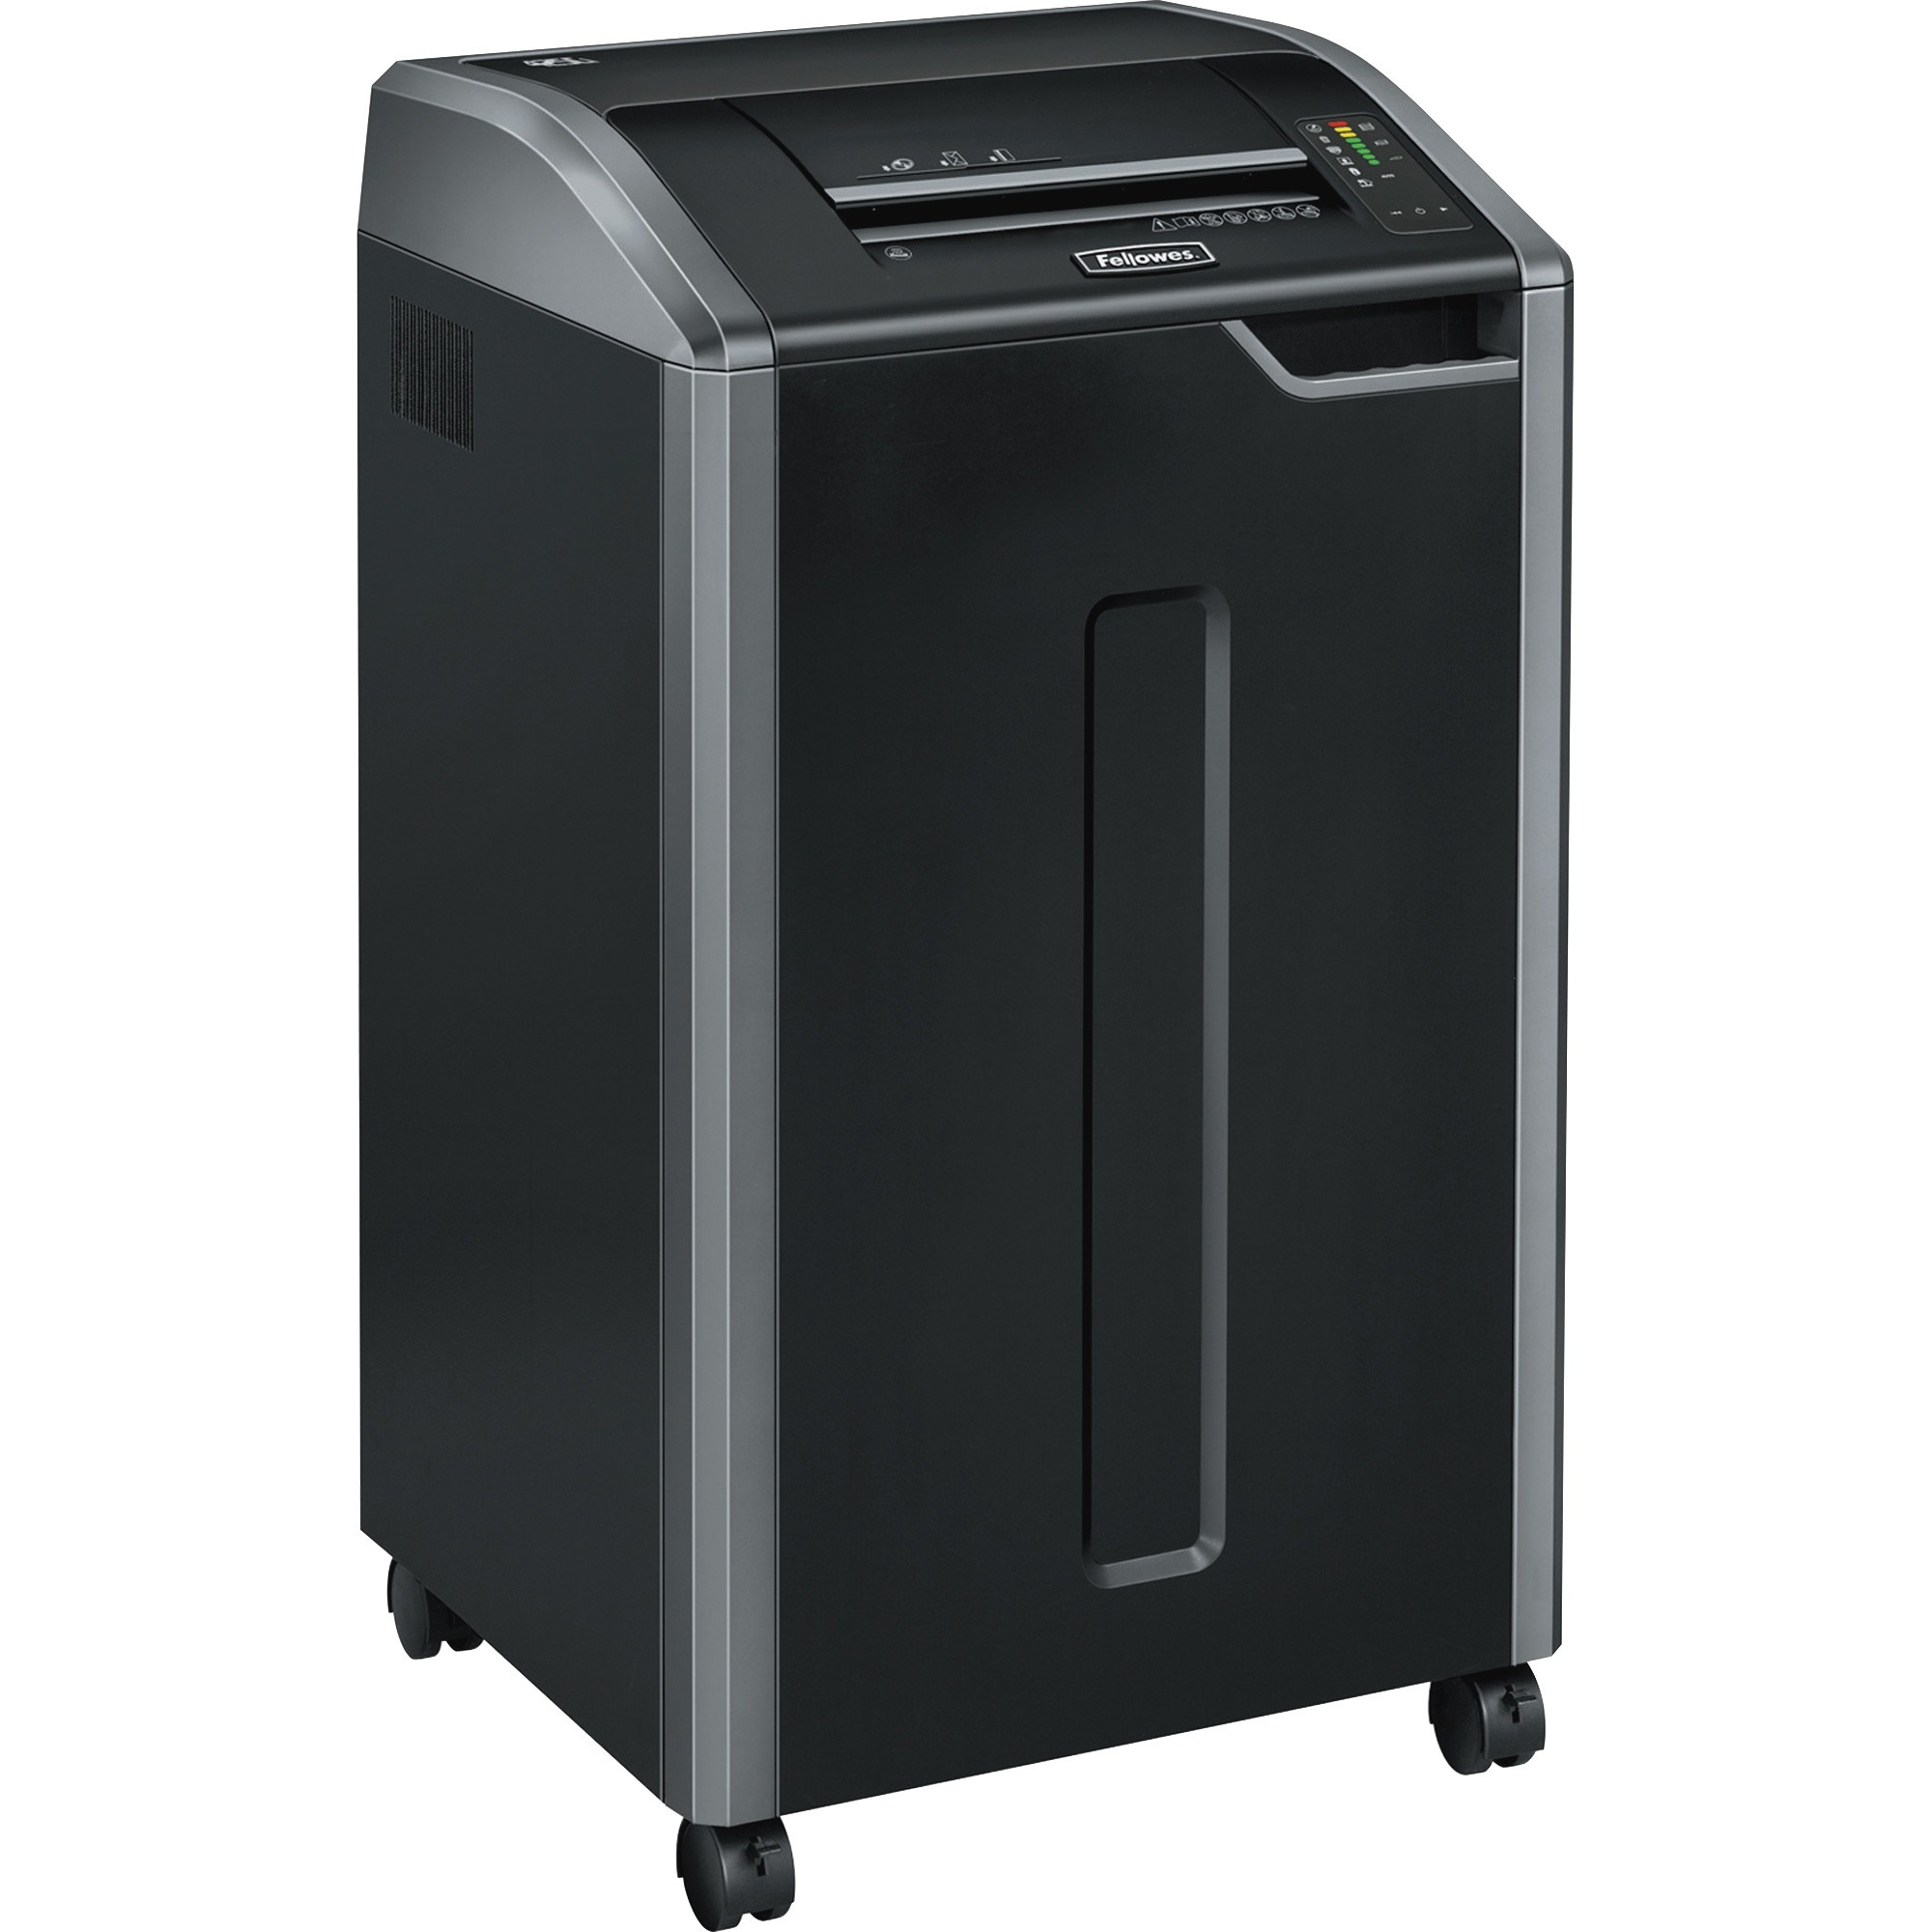 """<p>Achieve hassle-free shredding with Powershred 425Ci Cross-Cut Commercial Shredder. It can shred up to 30 sheets of paper per pass into 503 (5/32"""" x 1-1/8"""" Security Level P-4) cross-cut particles. This TAA-Compliant machine also safely shreds CDs/DVDs, credit cards, staples, paper clips and junk mail. Get three levels of advanced jam prevention with Fellowes 100 percent Jam Proof System that eliminates paper jams, powers through tough jobs and maximizes productivity. Auto-Oil Technology takes the guesswork out of maintaining your shredder by automatically oiling the cutters at regular intervals. Patented SafeSense Technology is designed with an electronic safety sensor that automatically disables the shredder when hands touch the paper opening. The Energy Savings System provides optimal energy efficiency 100 percent of the time. With the ability to shred continuously, the 425Ci is ideal for departmental use and includes a high-volume, 30-gallon removable basket.</p>"""